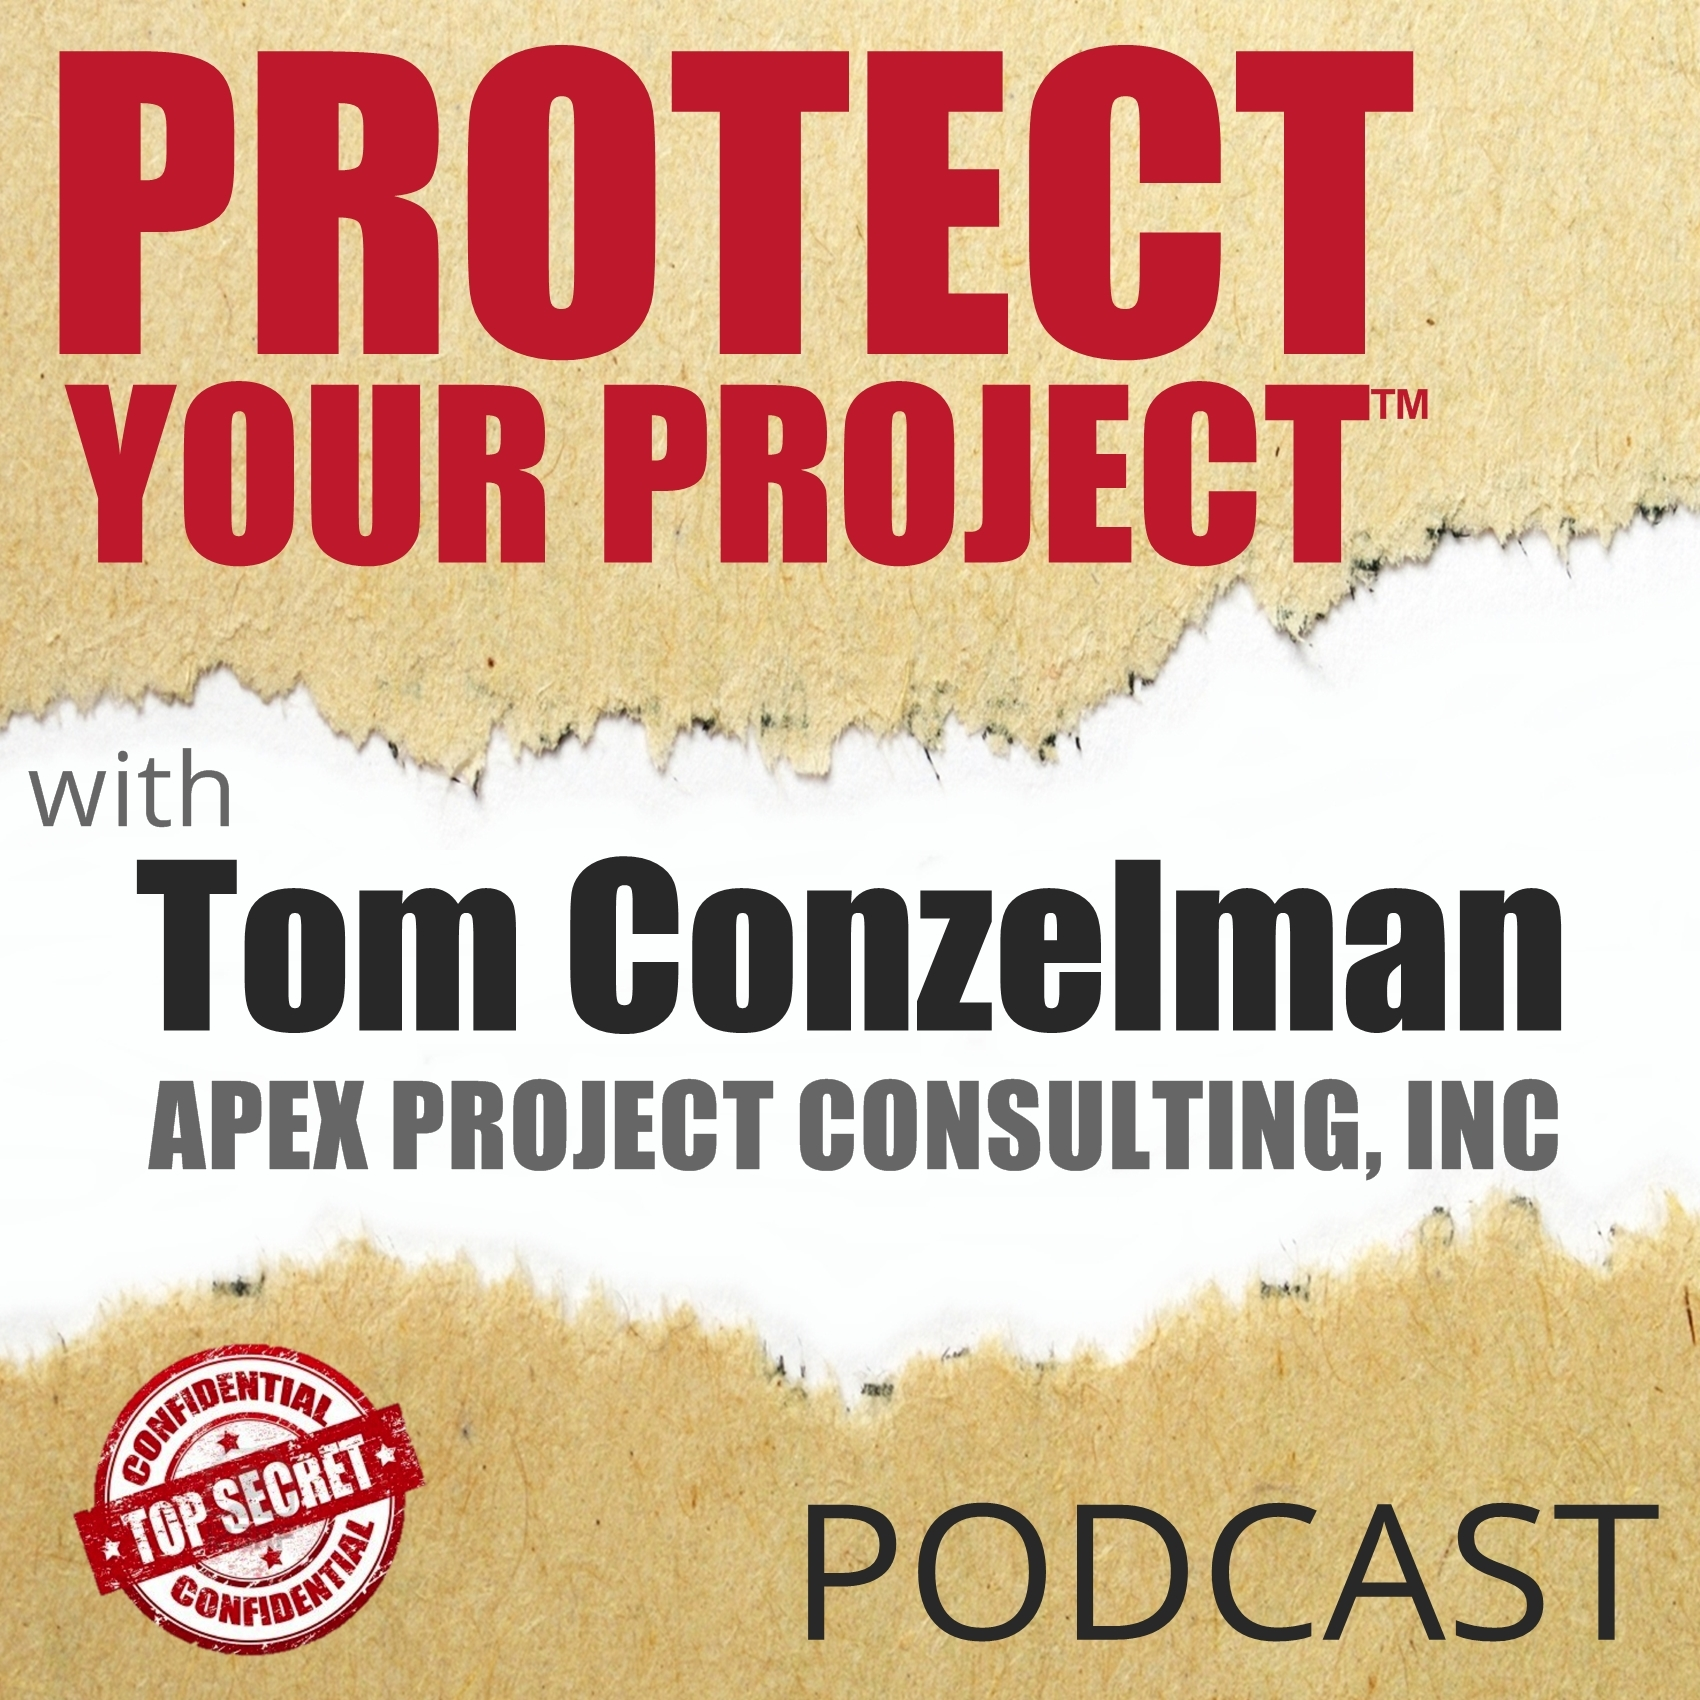 PROTECT YOUR PROJECT™ Podcast with Tom Conzelman